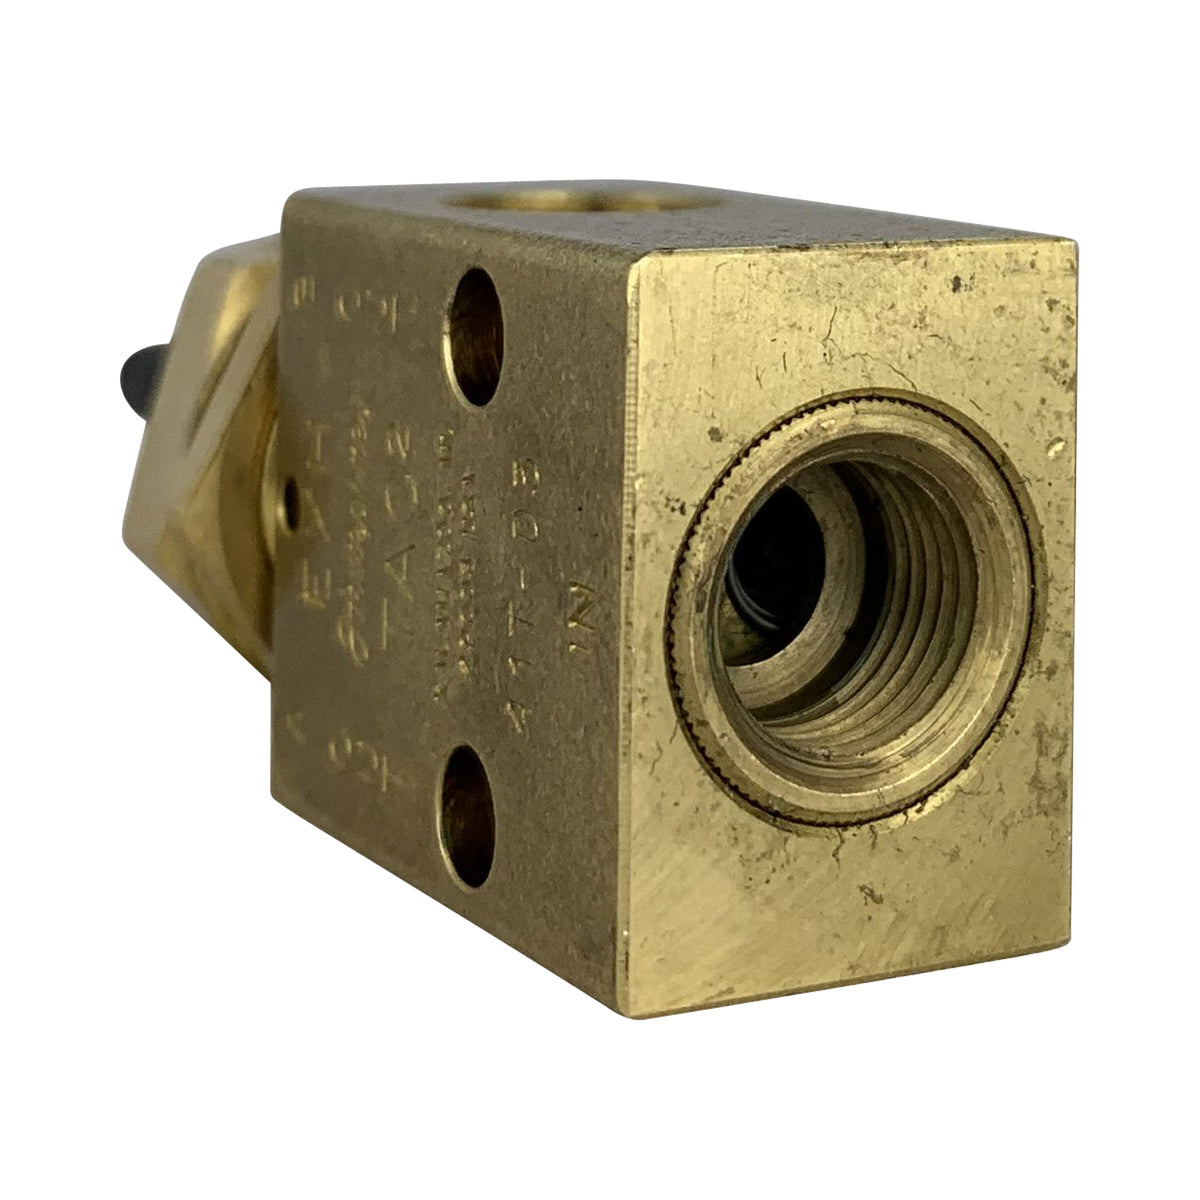 3 way brass valve with toggle and threaded collar